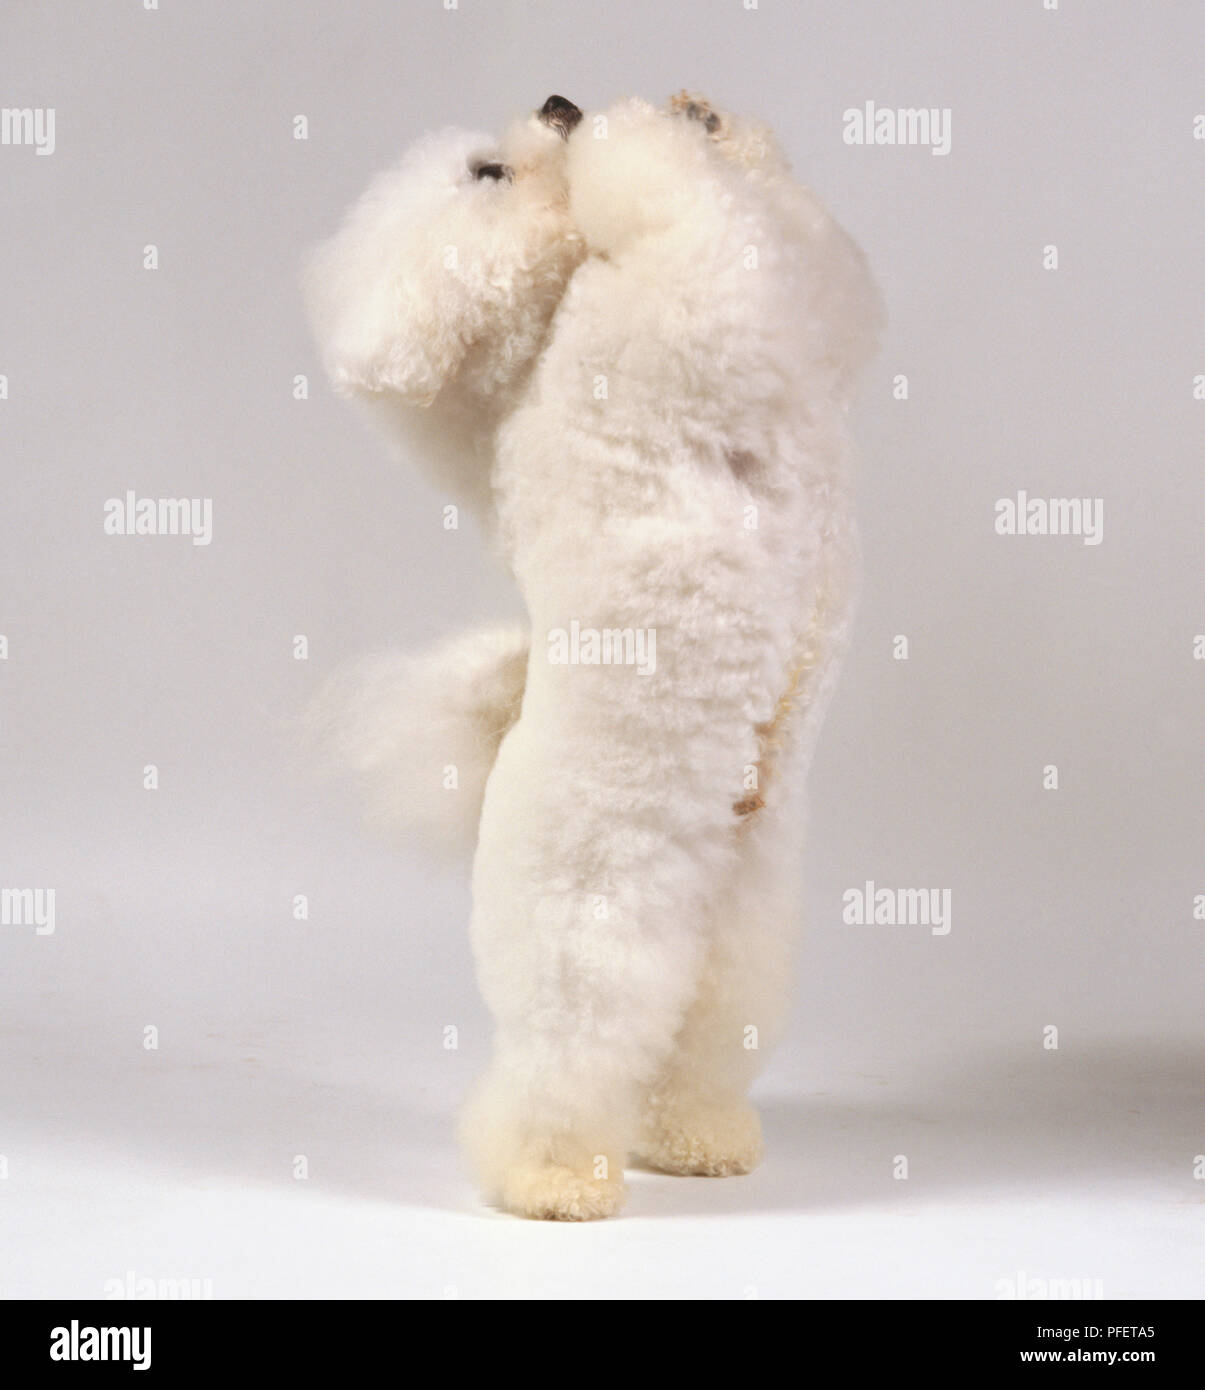 Dogs Hind Legs Stock Photos & Dogs Hind Legs Stock Images